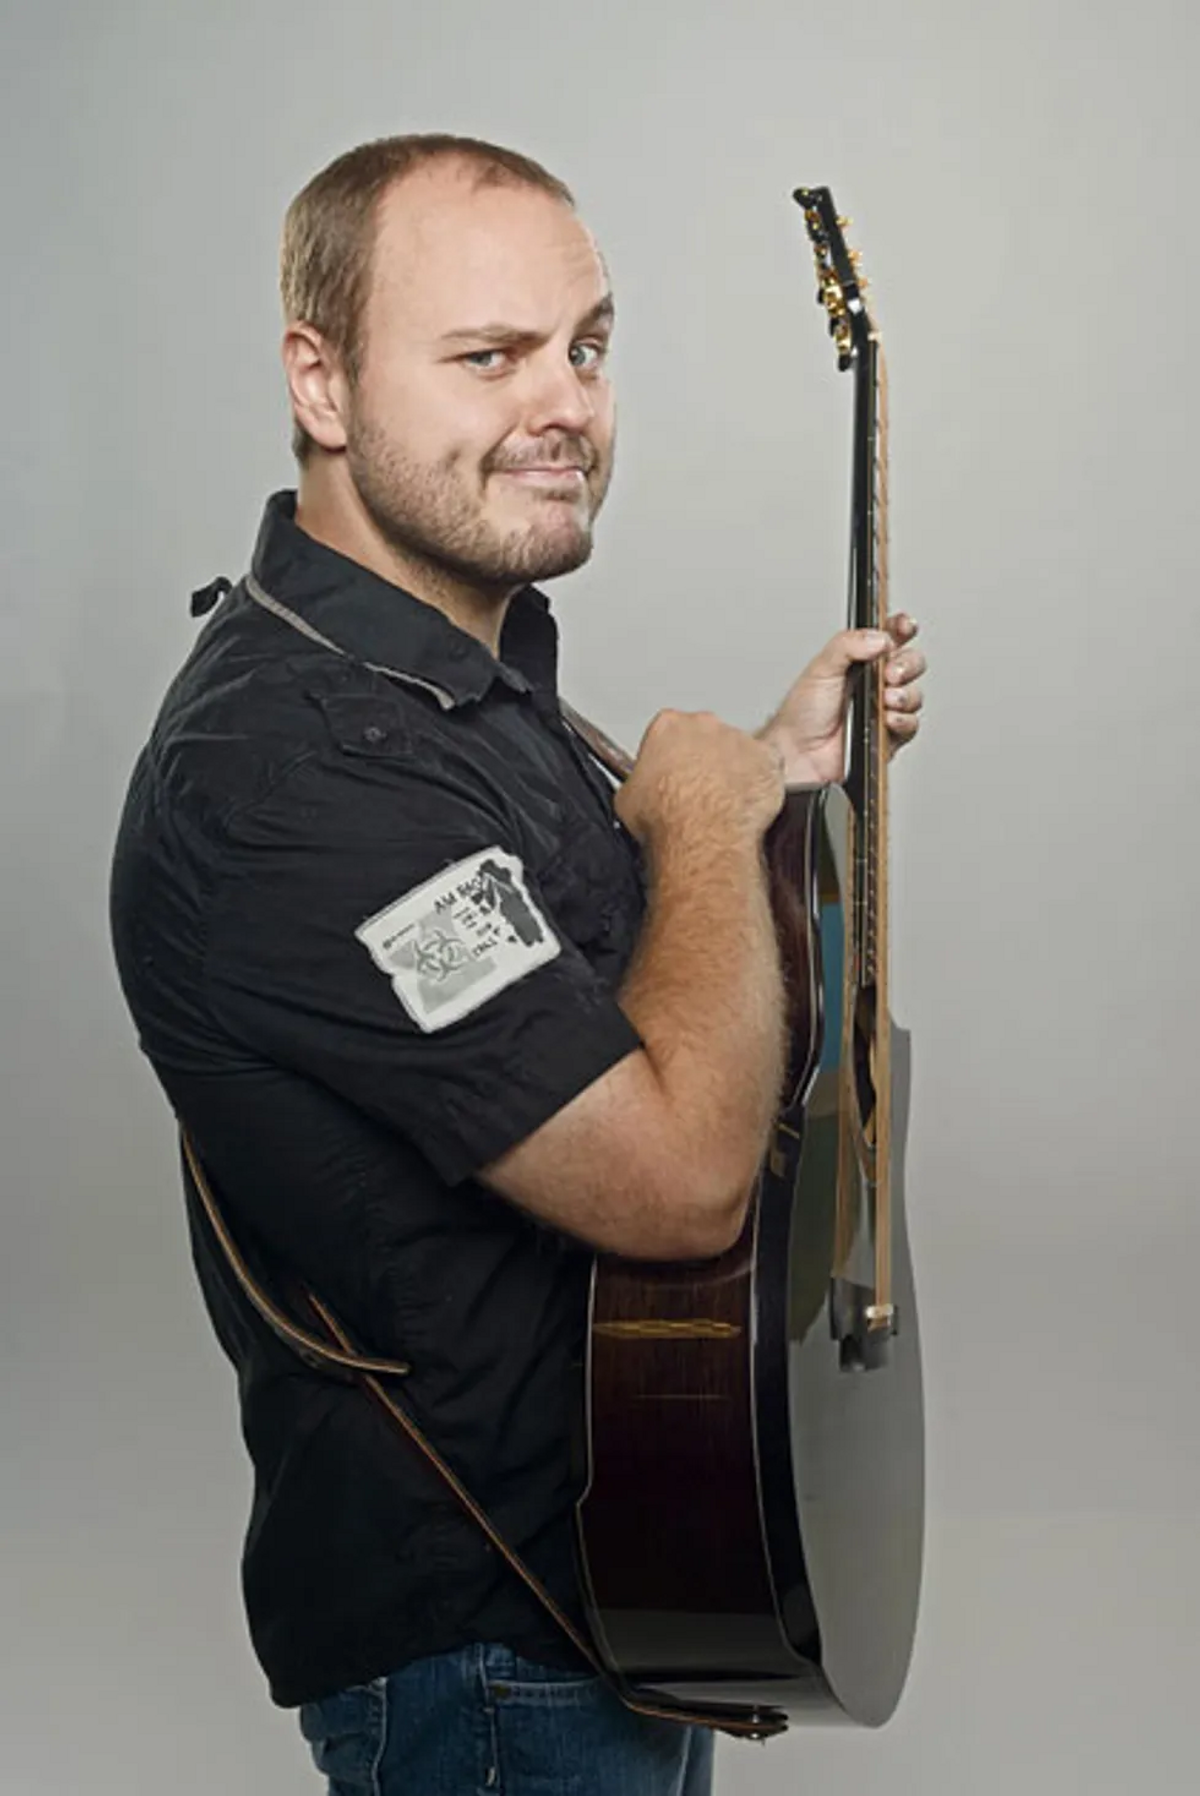 Andy McKee: Tapping into New Territory